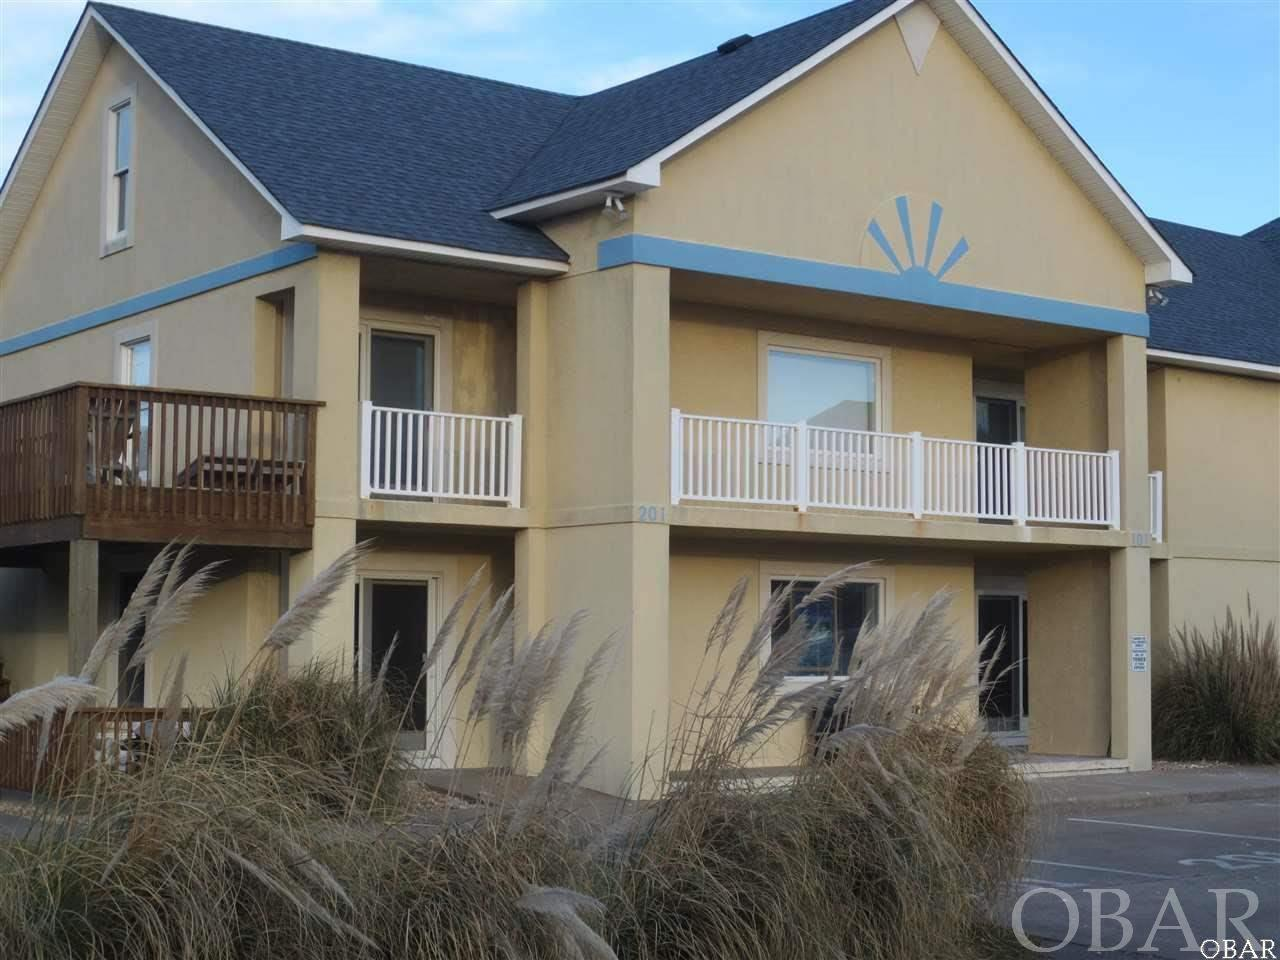 57211 Atlantic View Drive, Hatteras, NC 27943, 2 Bedrooms Bedrooms, ,2 BathroomsBathrooms,Residential,For sale,Atlantic View Drive,101252